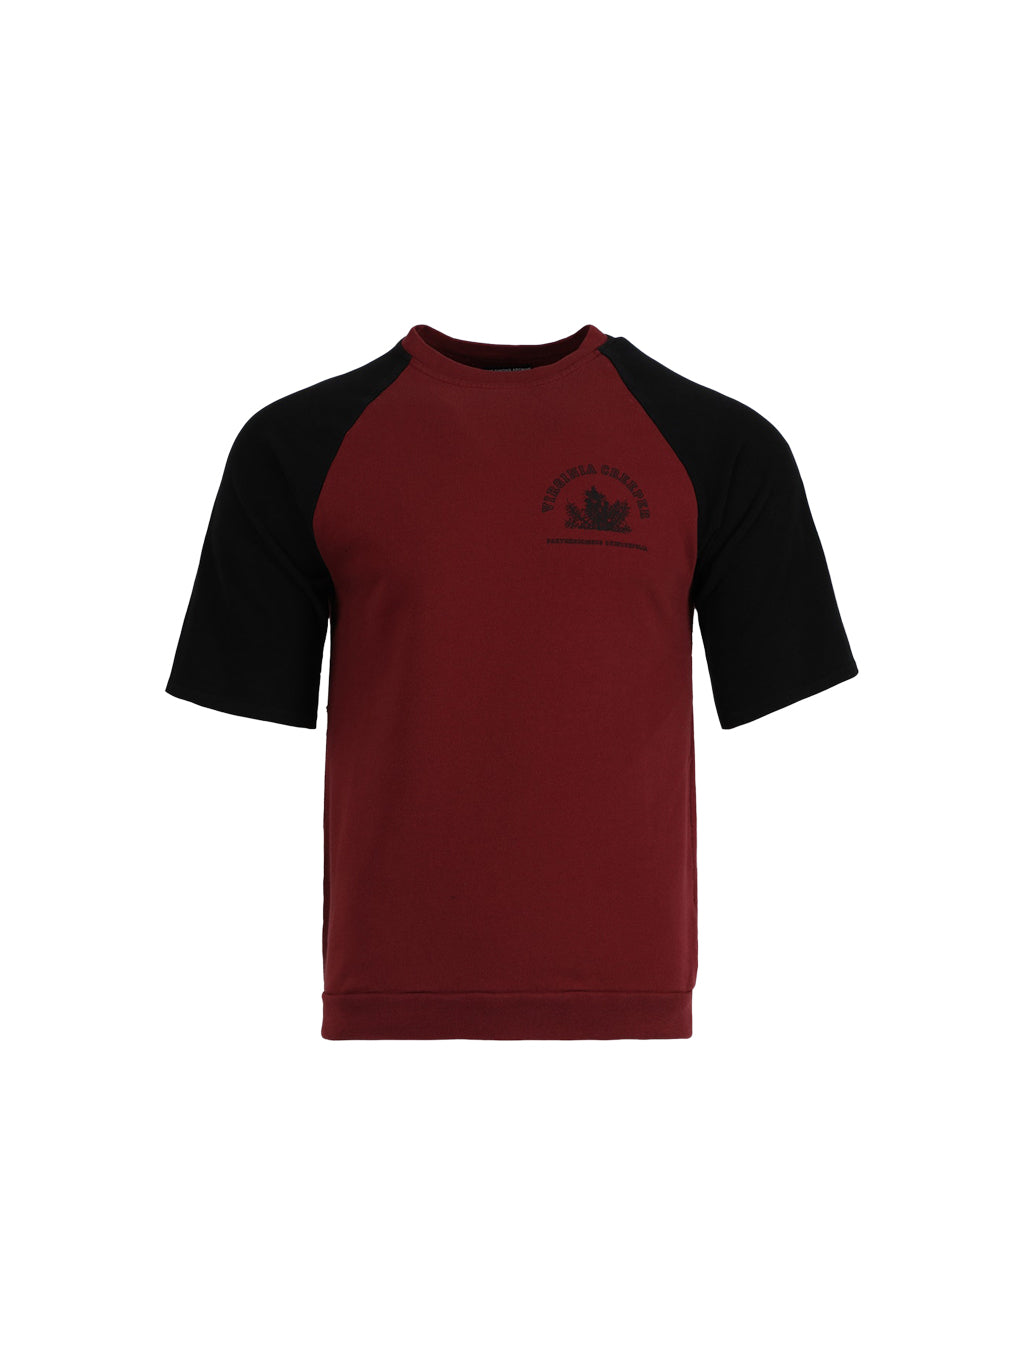 Burgundy Archive Redux Virginia Creeper T-Shirt